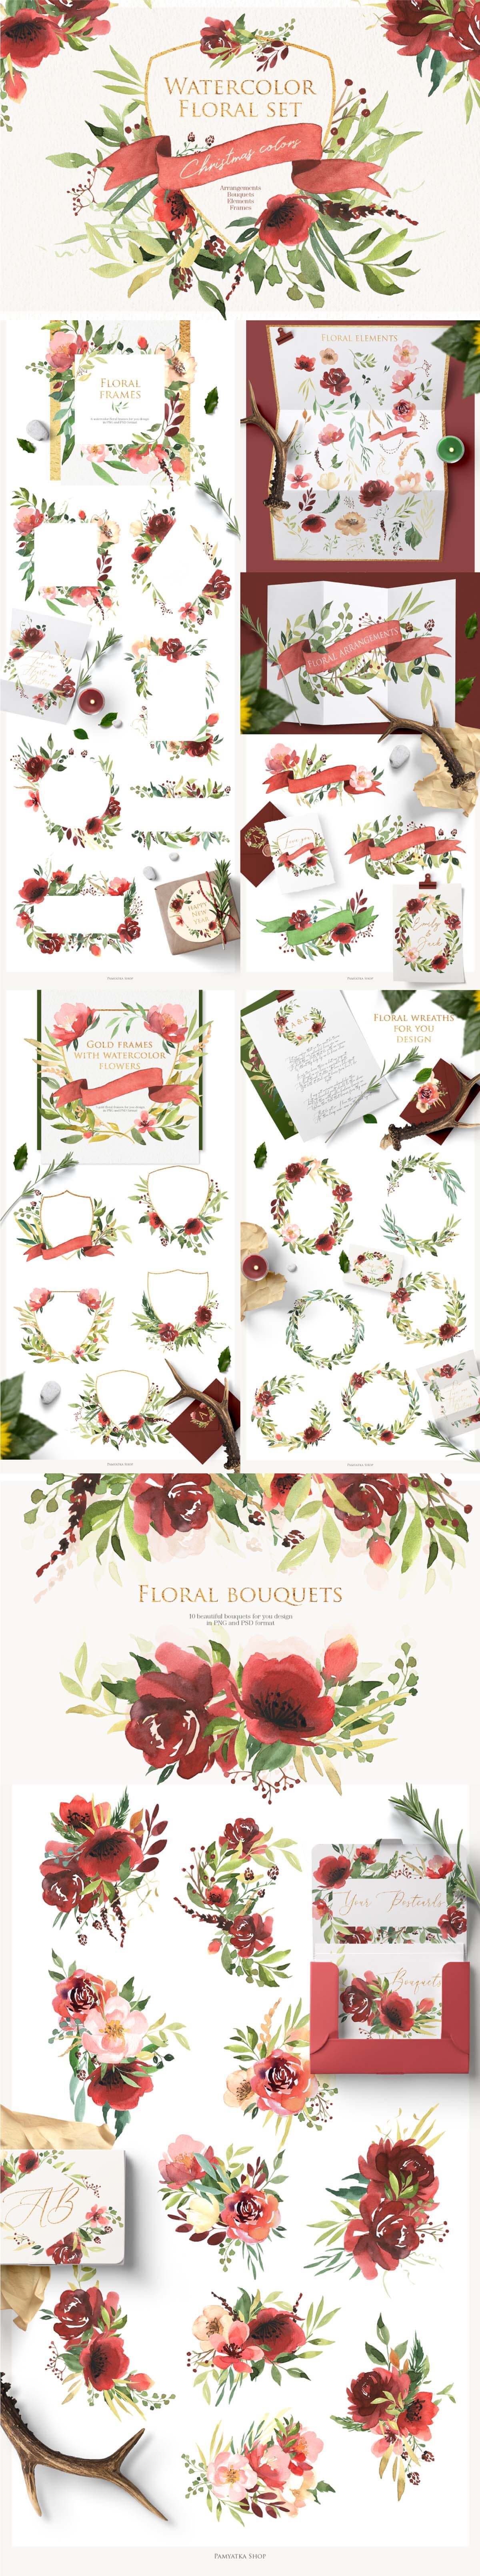 Floral-Set-Christmas-Colors